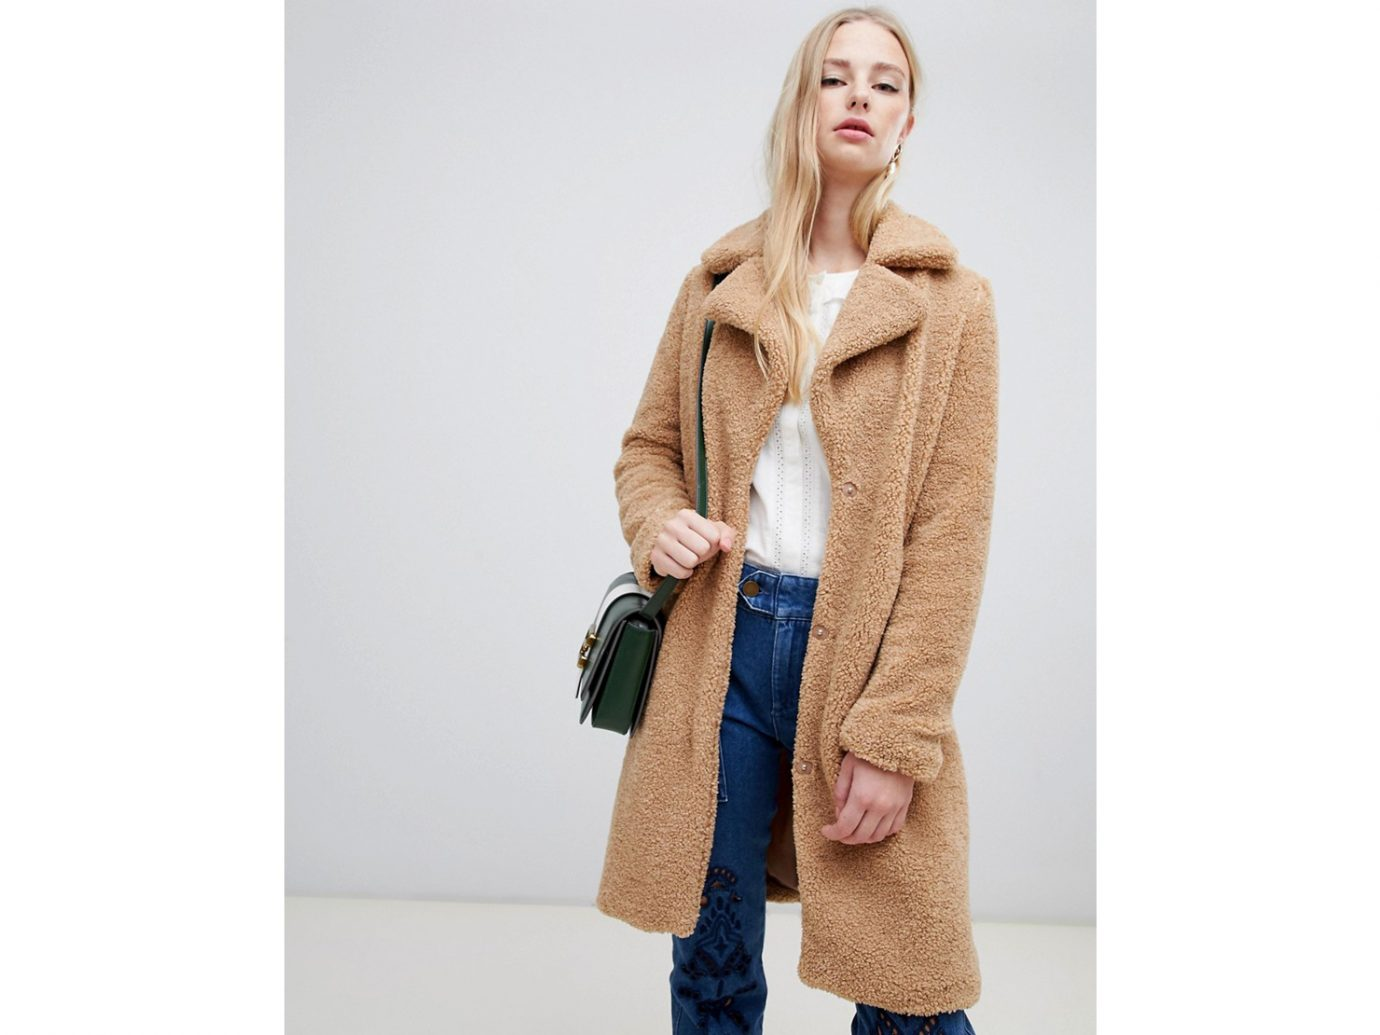 Teddy Coat: Vero Moda Teddy Coat